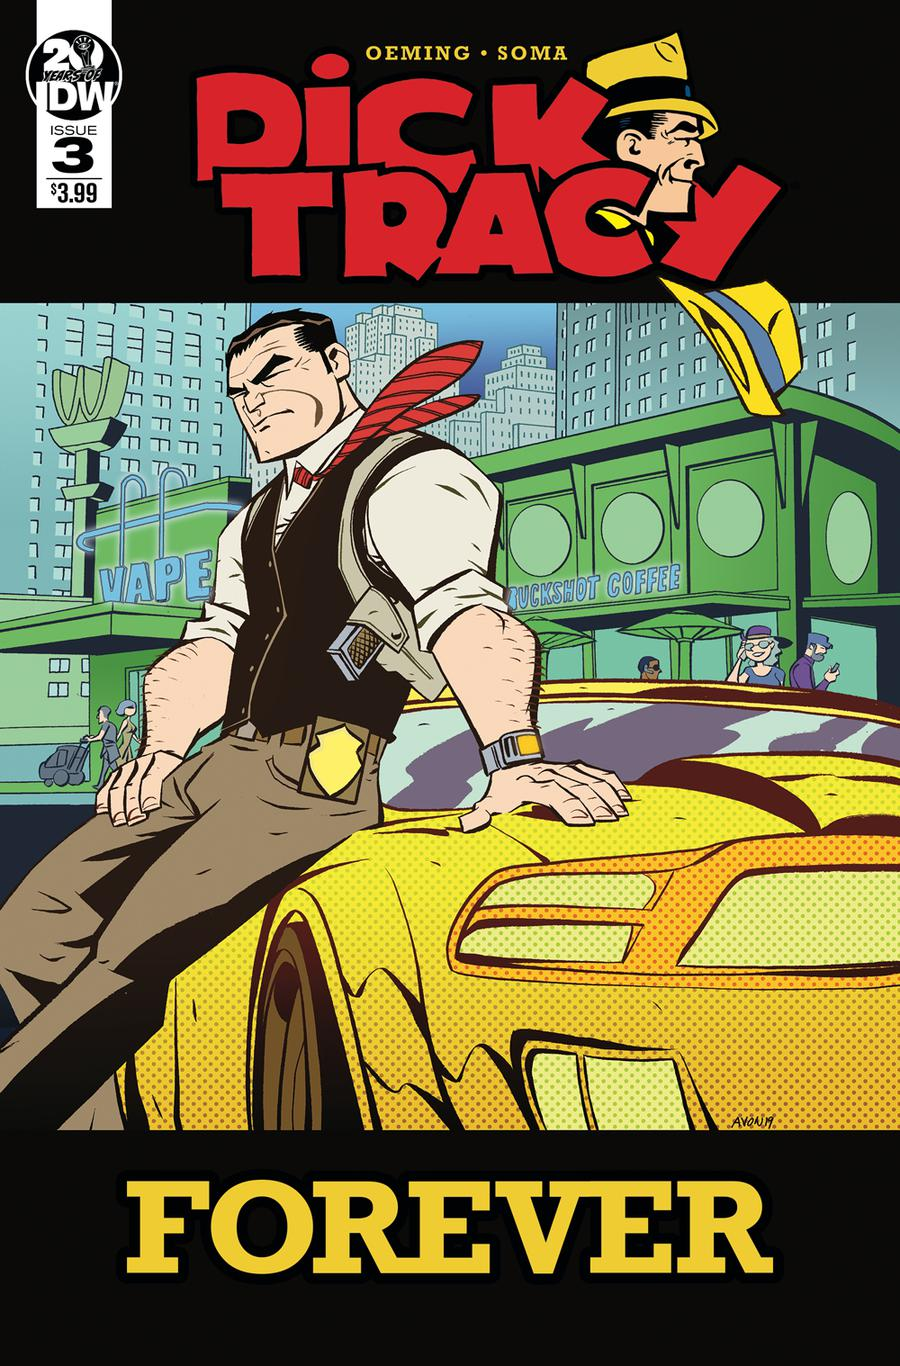 Dick Tracy Forever #3 Cover A Regular Michael Avon Oeming Cover